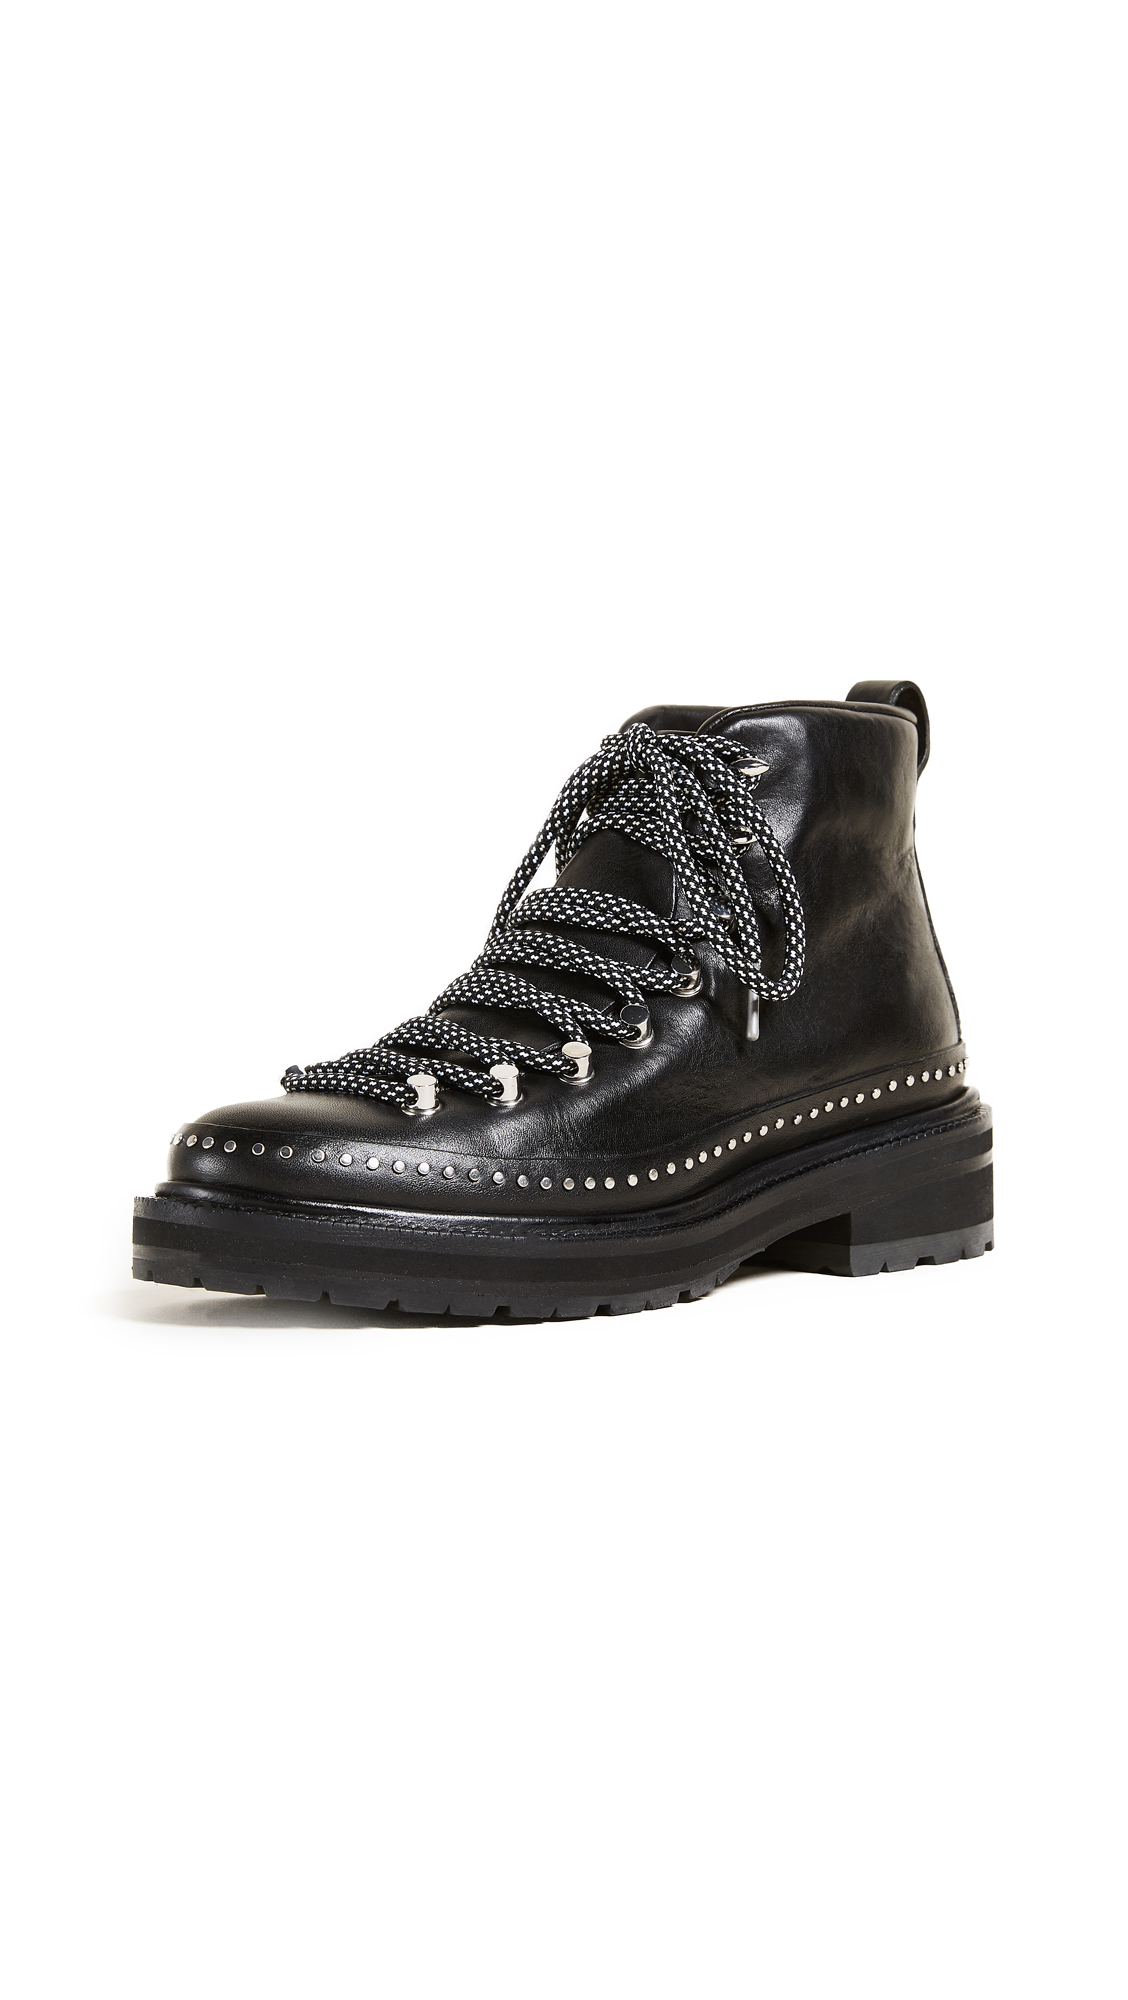 Rag & Bone Compass Boots II - Black